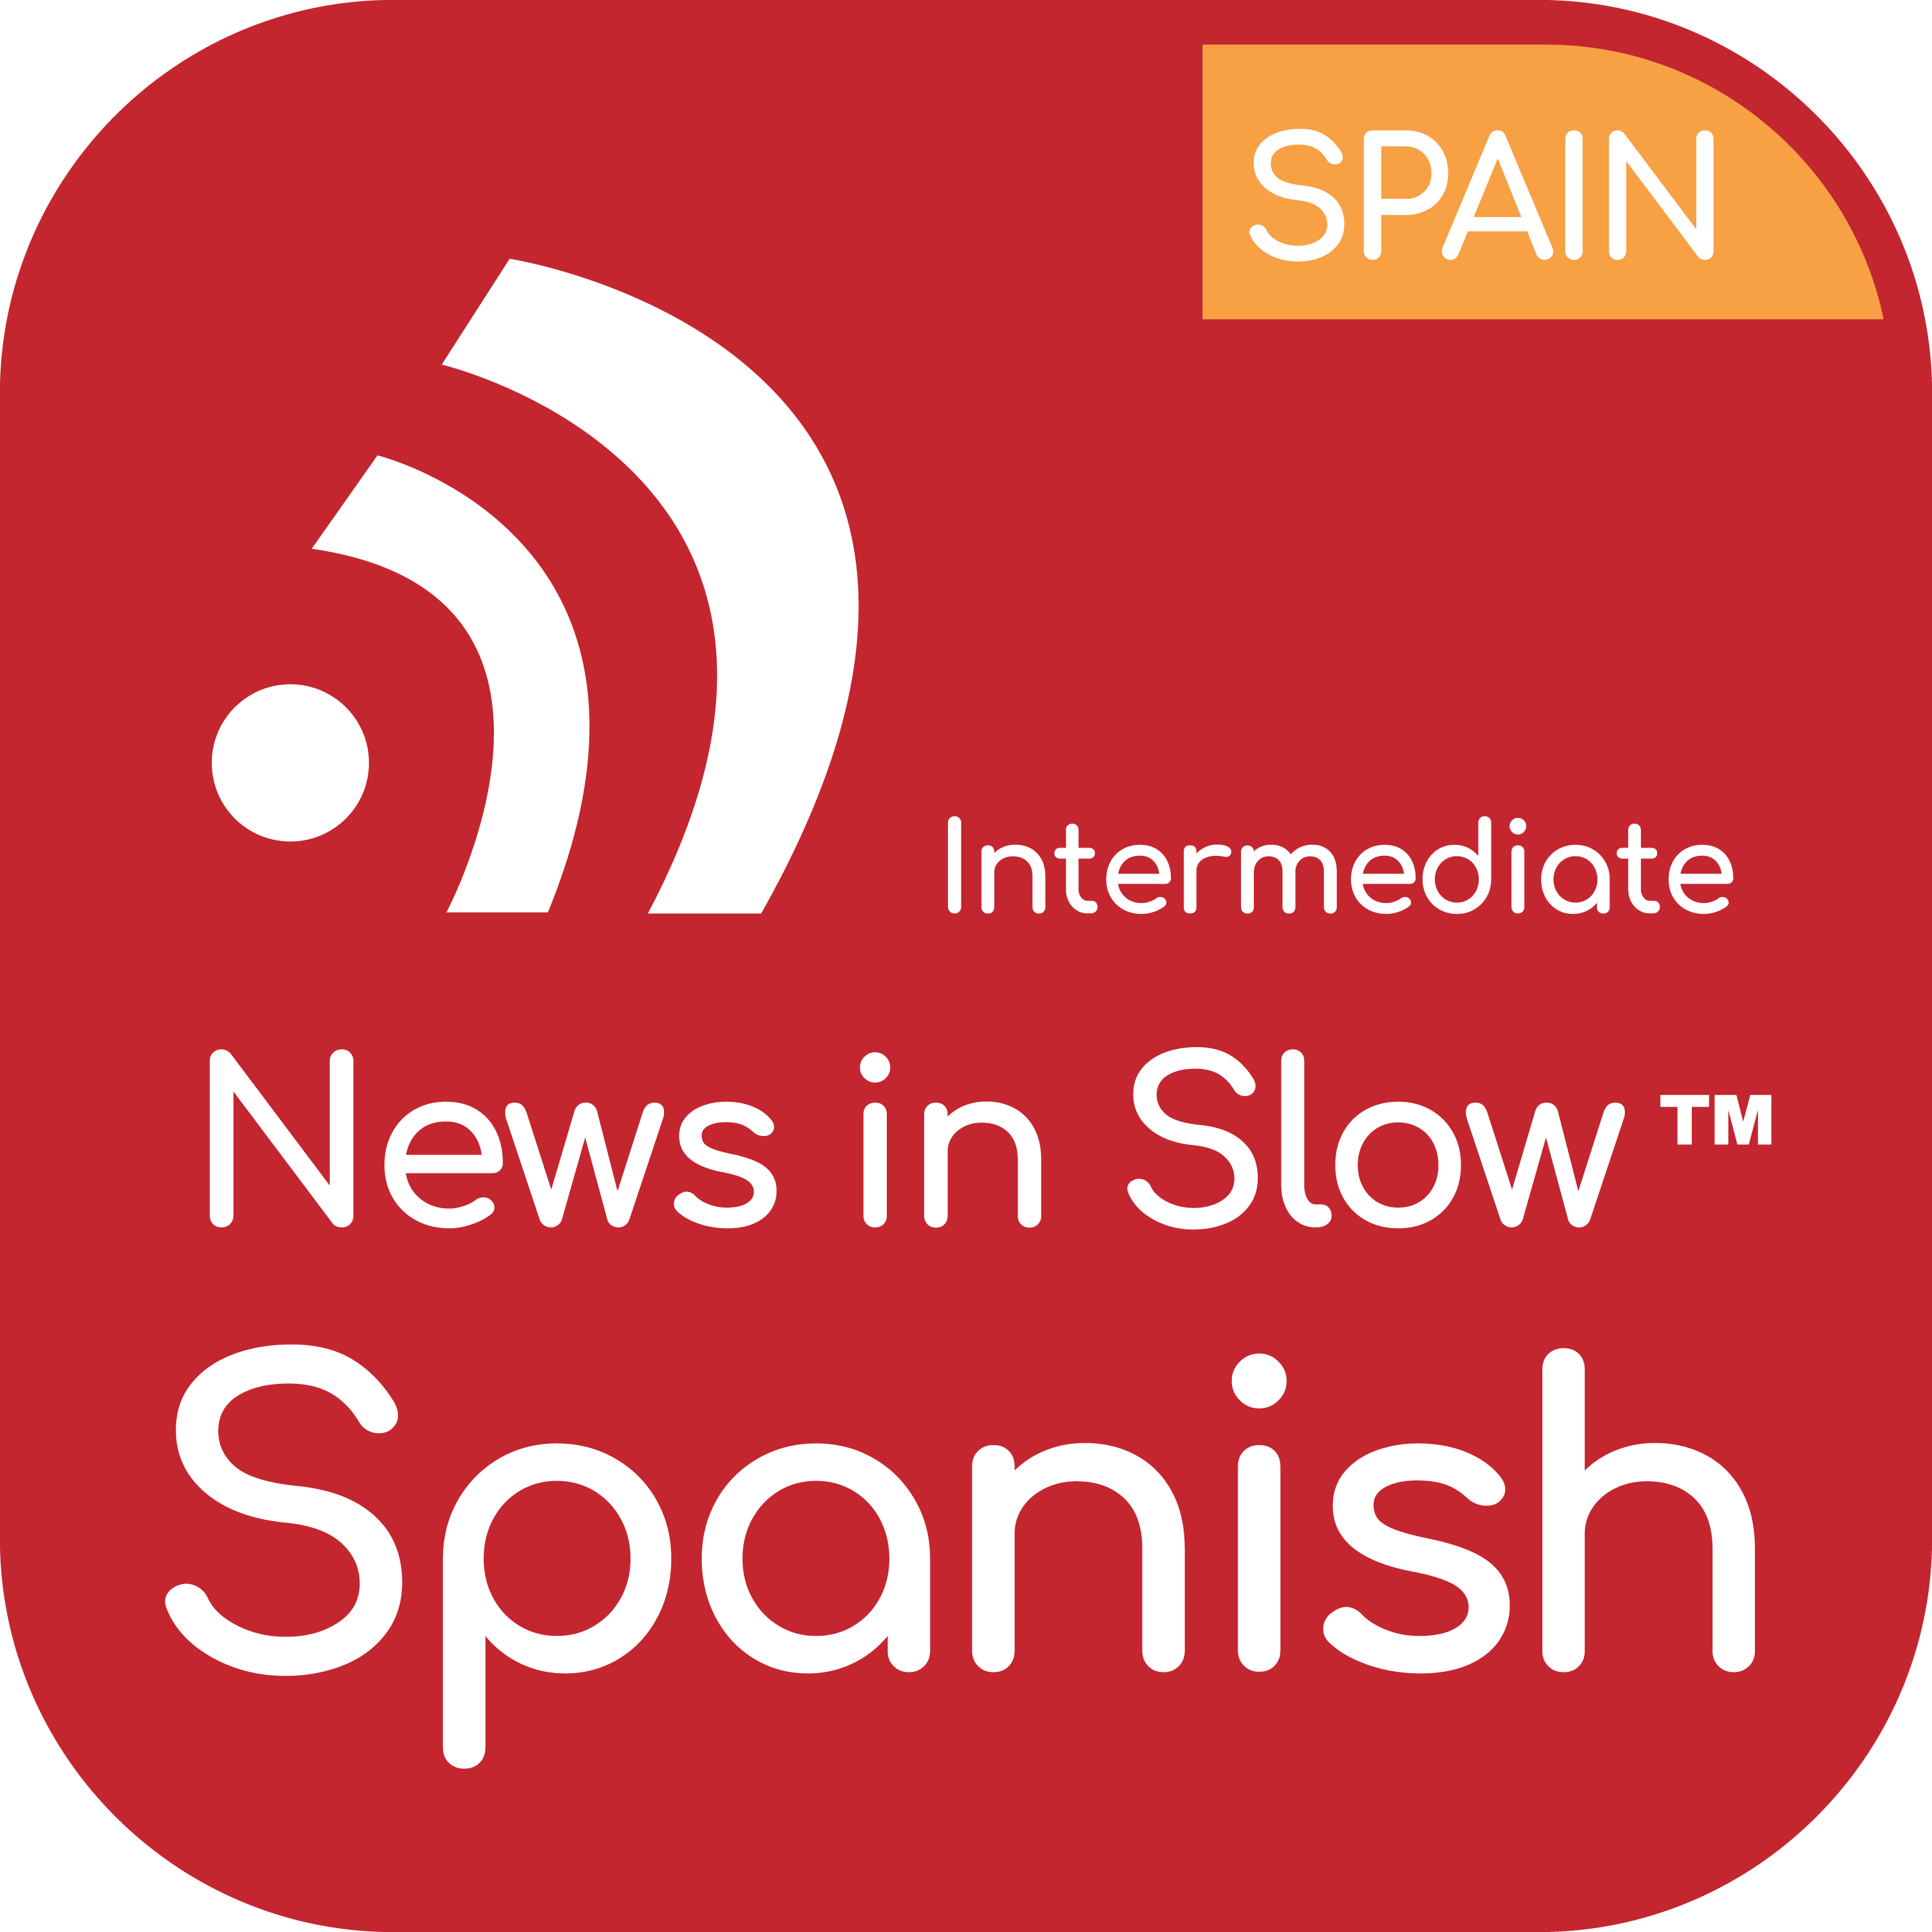 News in Slow Spanish - #616 - Learn Spanish through Current Events